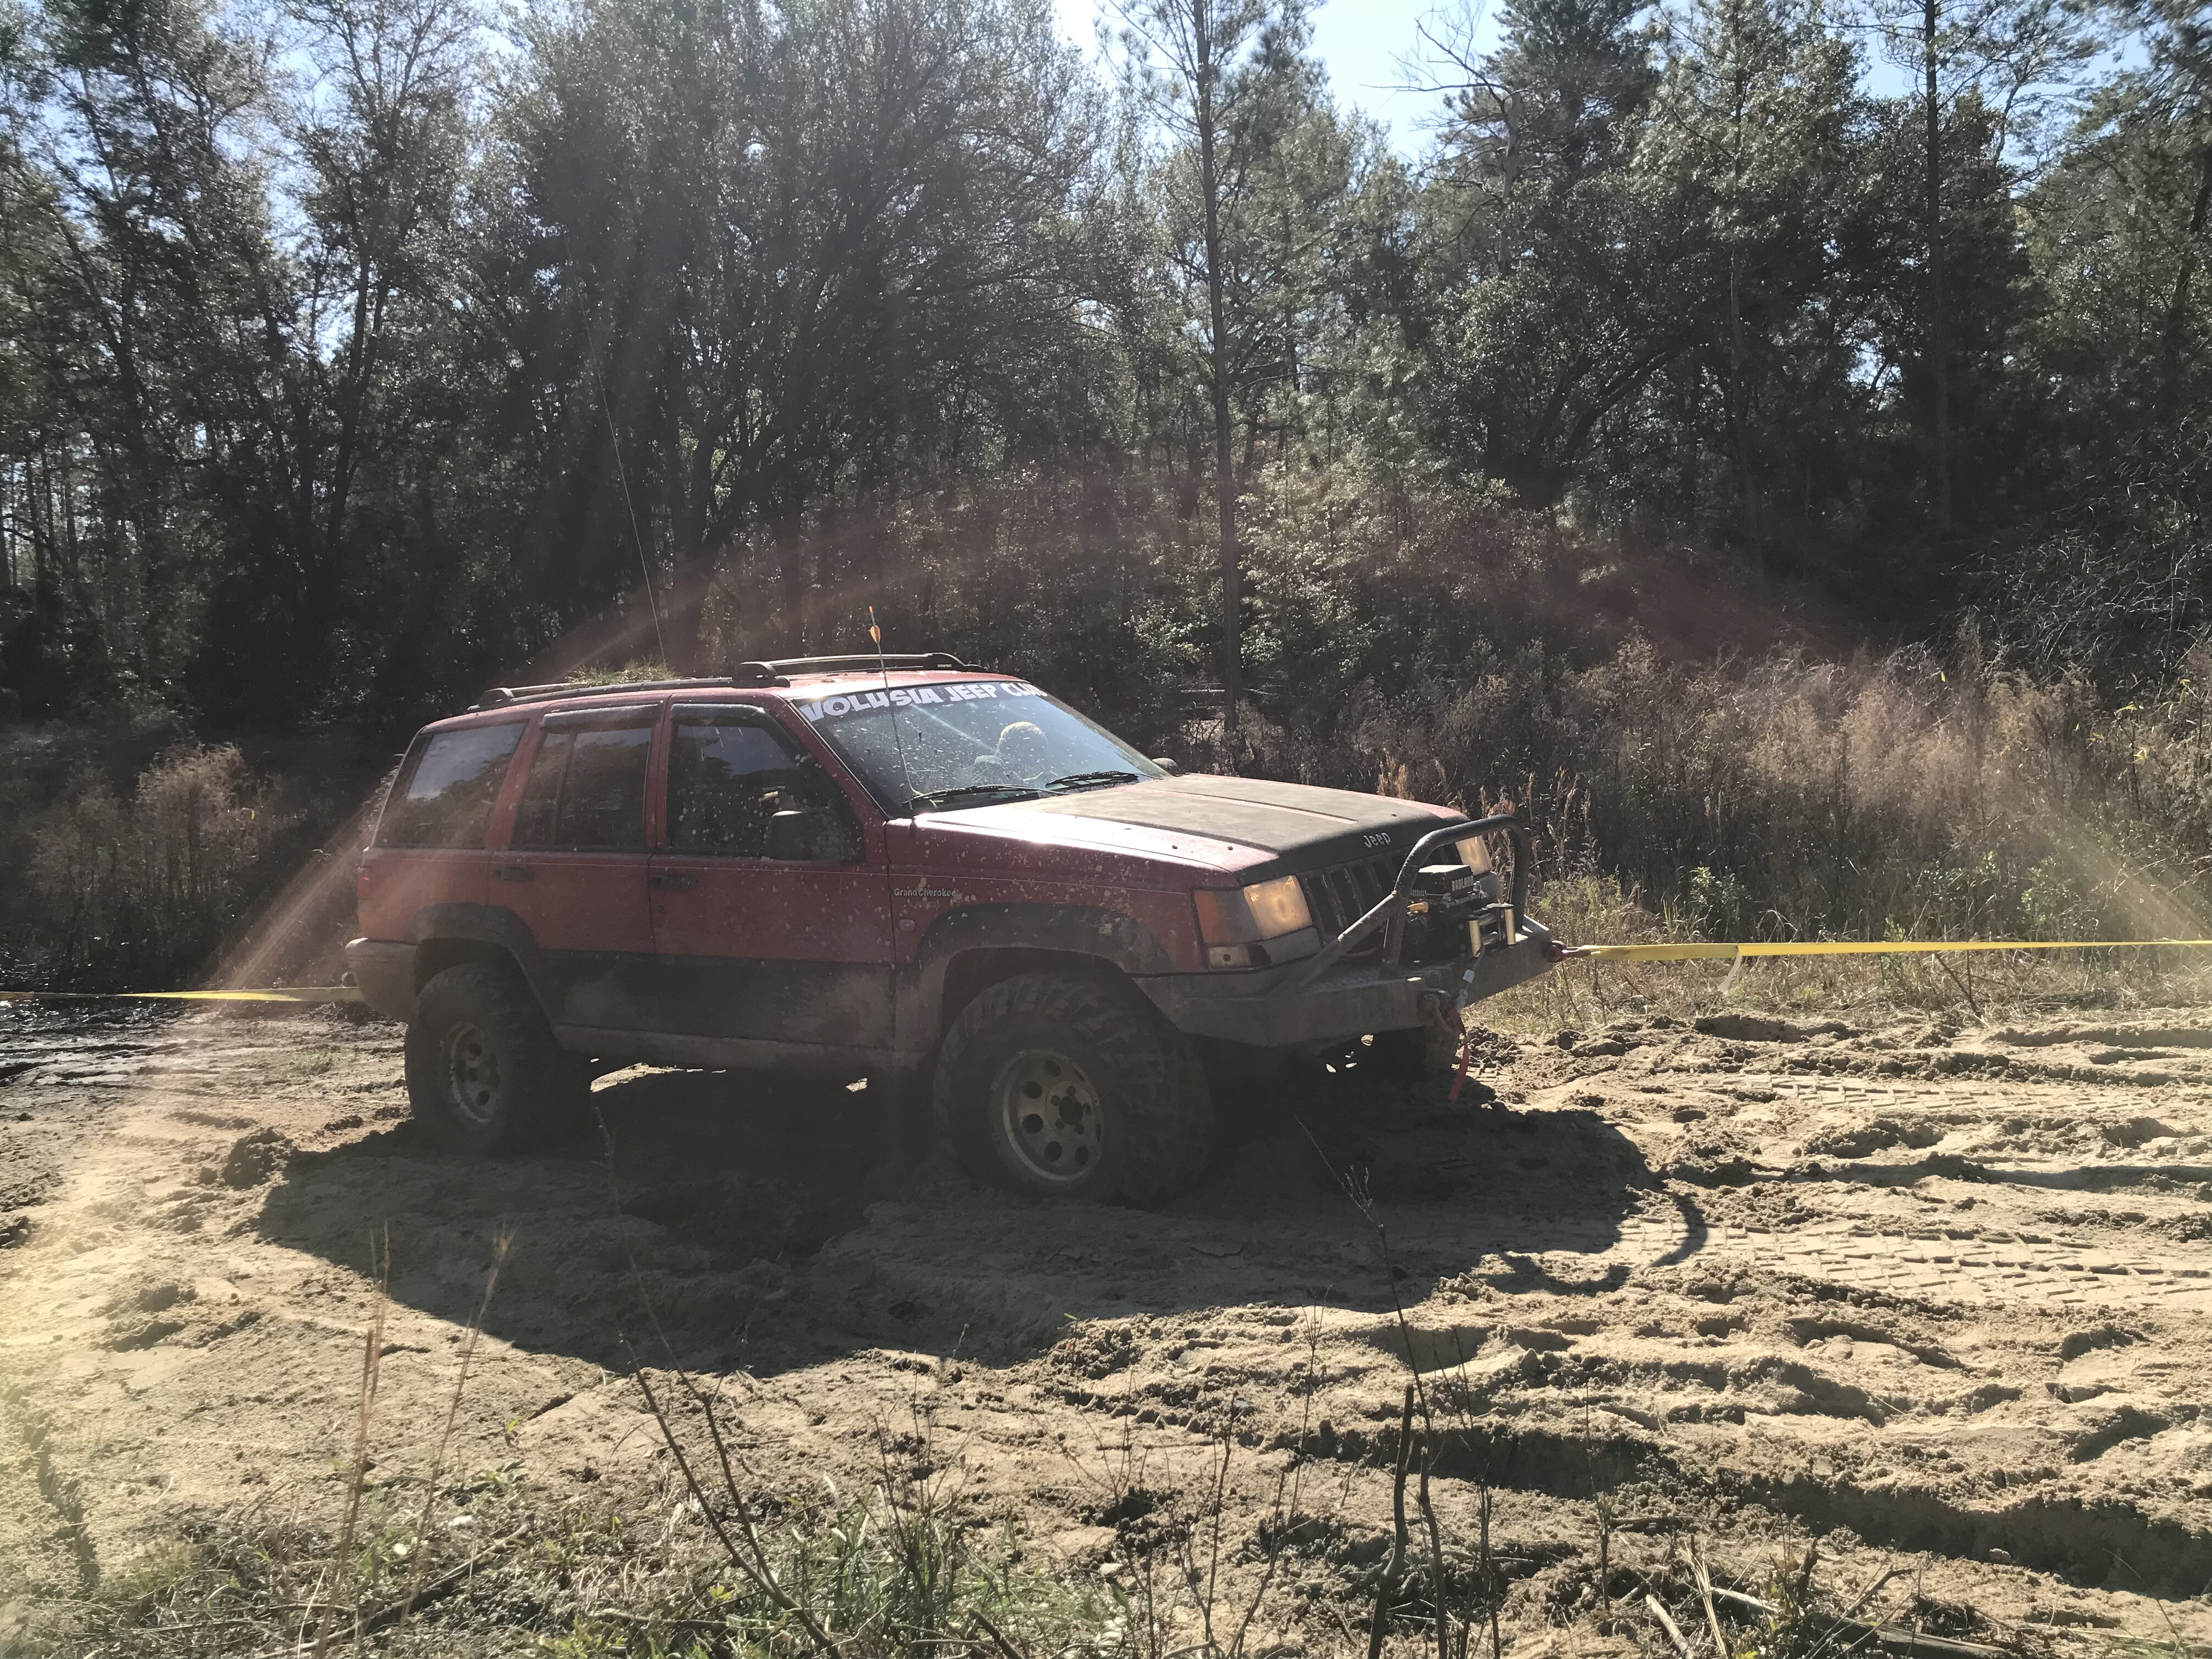 Converting A Zj Grand Cherokee To Manual 5 Speed Transmission Jeep 94 Neutral Safety Switch Wiring Xj Mj Comanche Pickup And 4wd Mechanix Magazine Tech